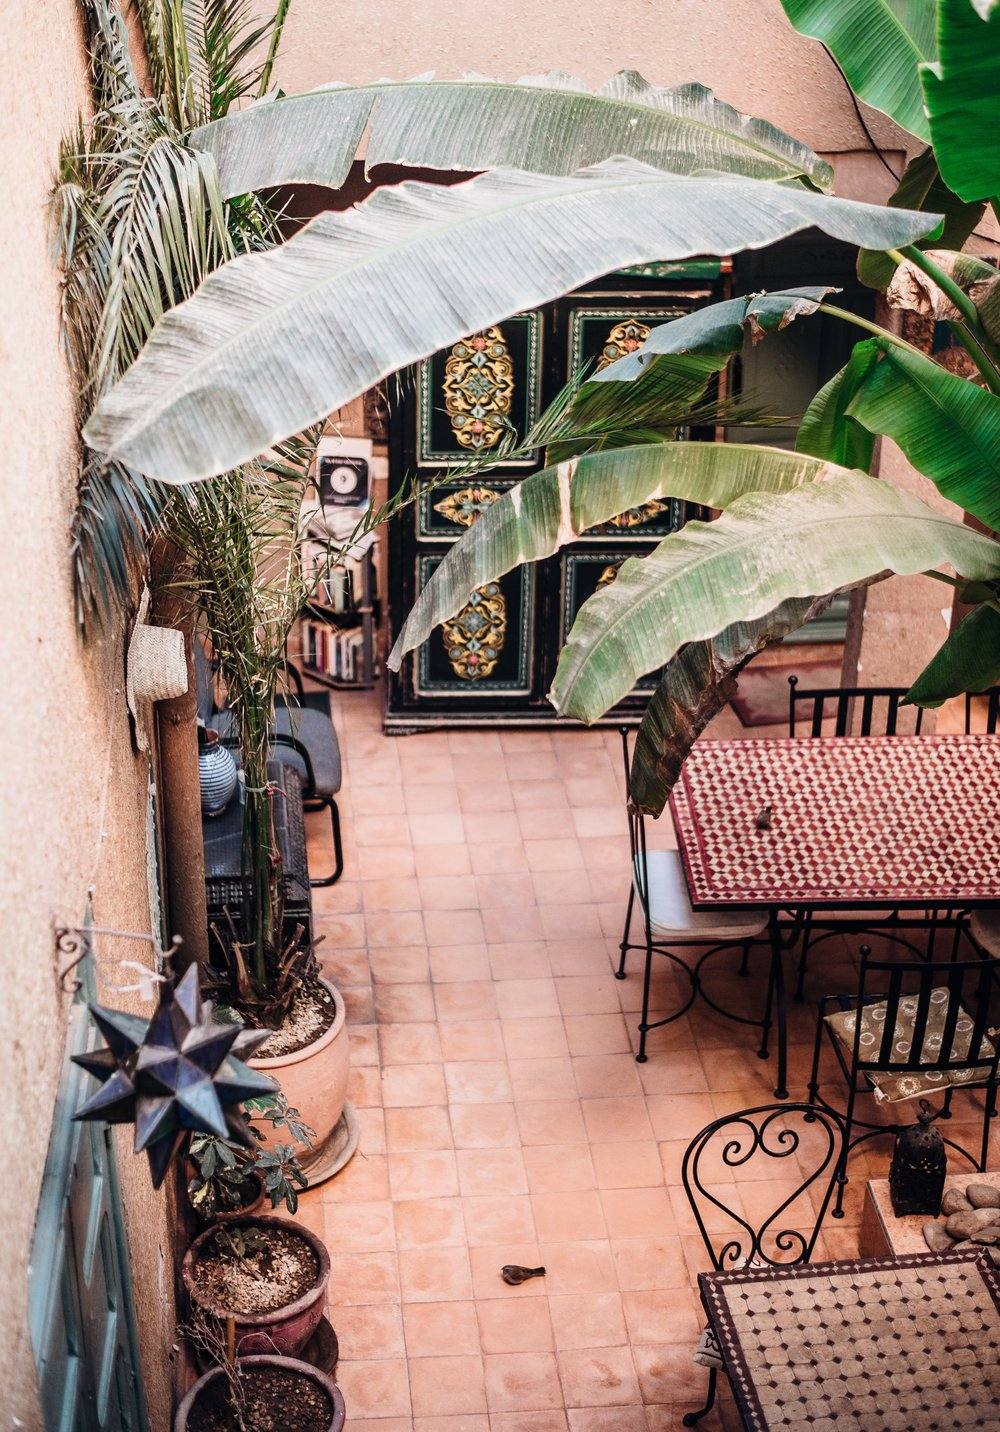 Riad-inspired Courtyards in Marrakech and Fez - For the themed Instagrammer.